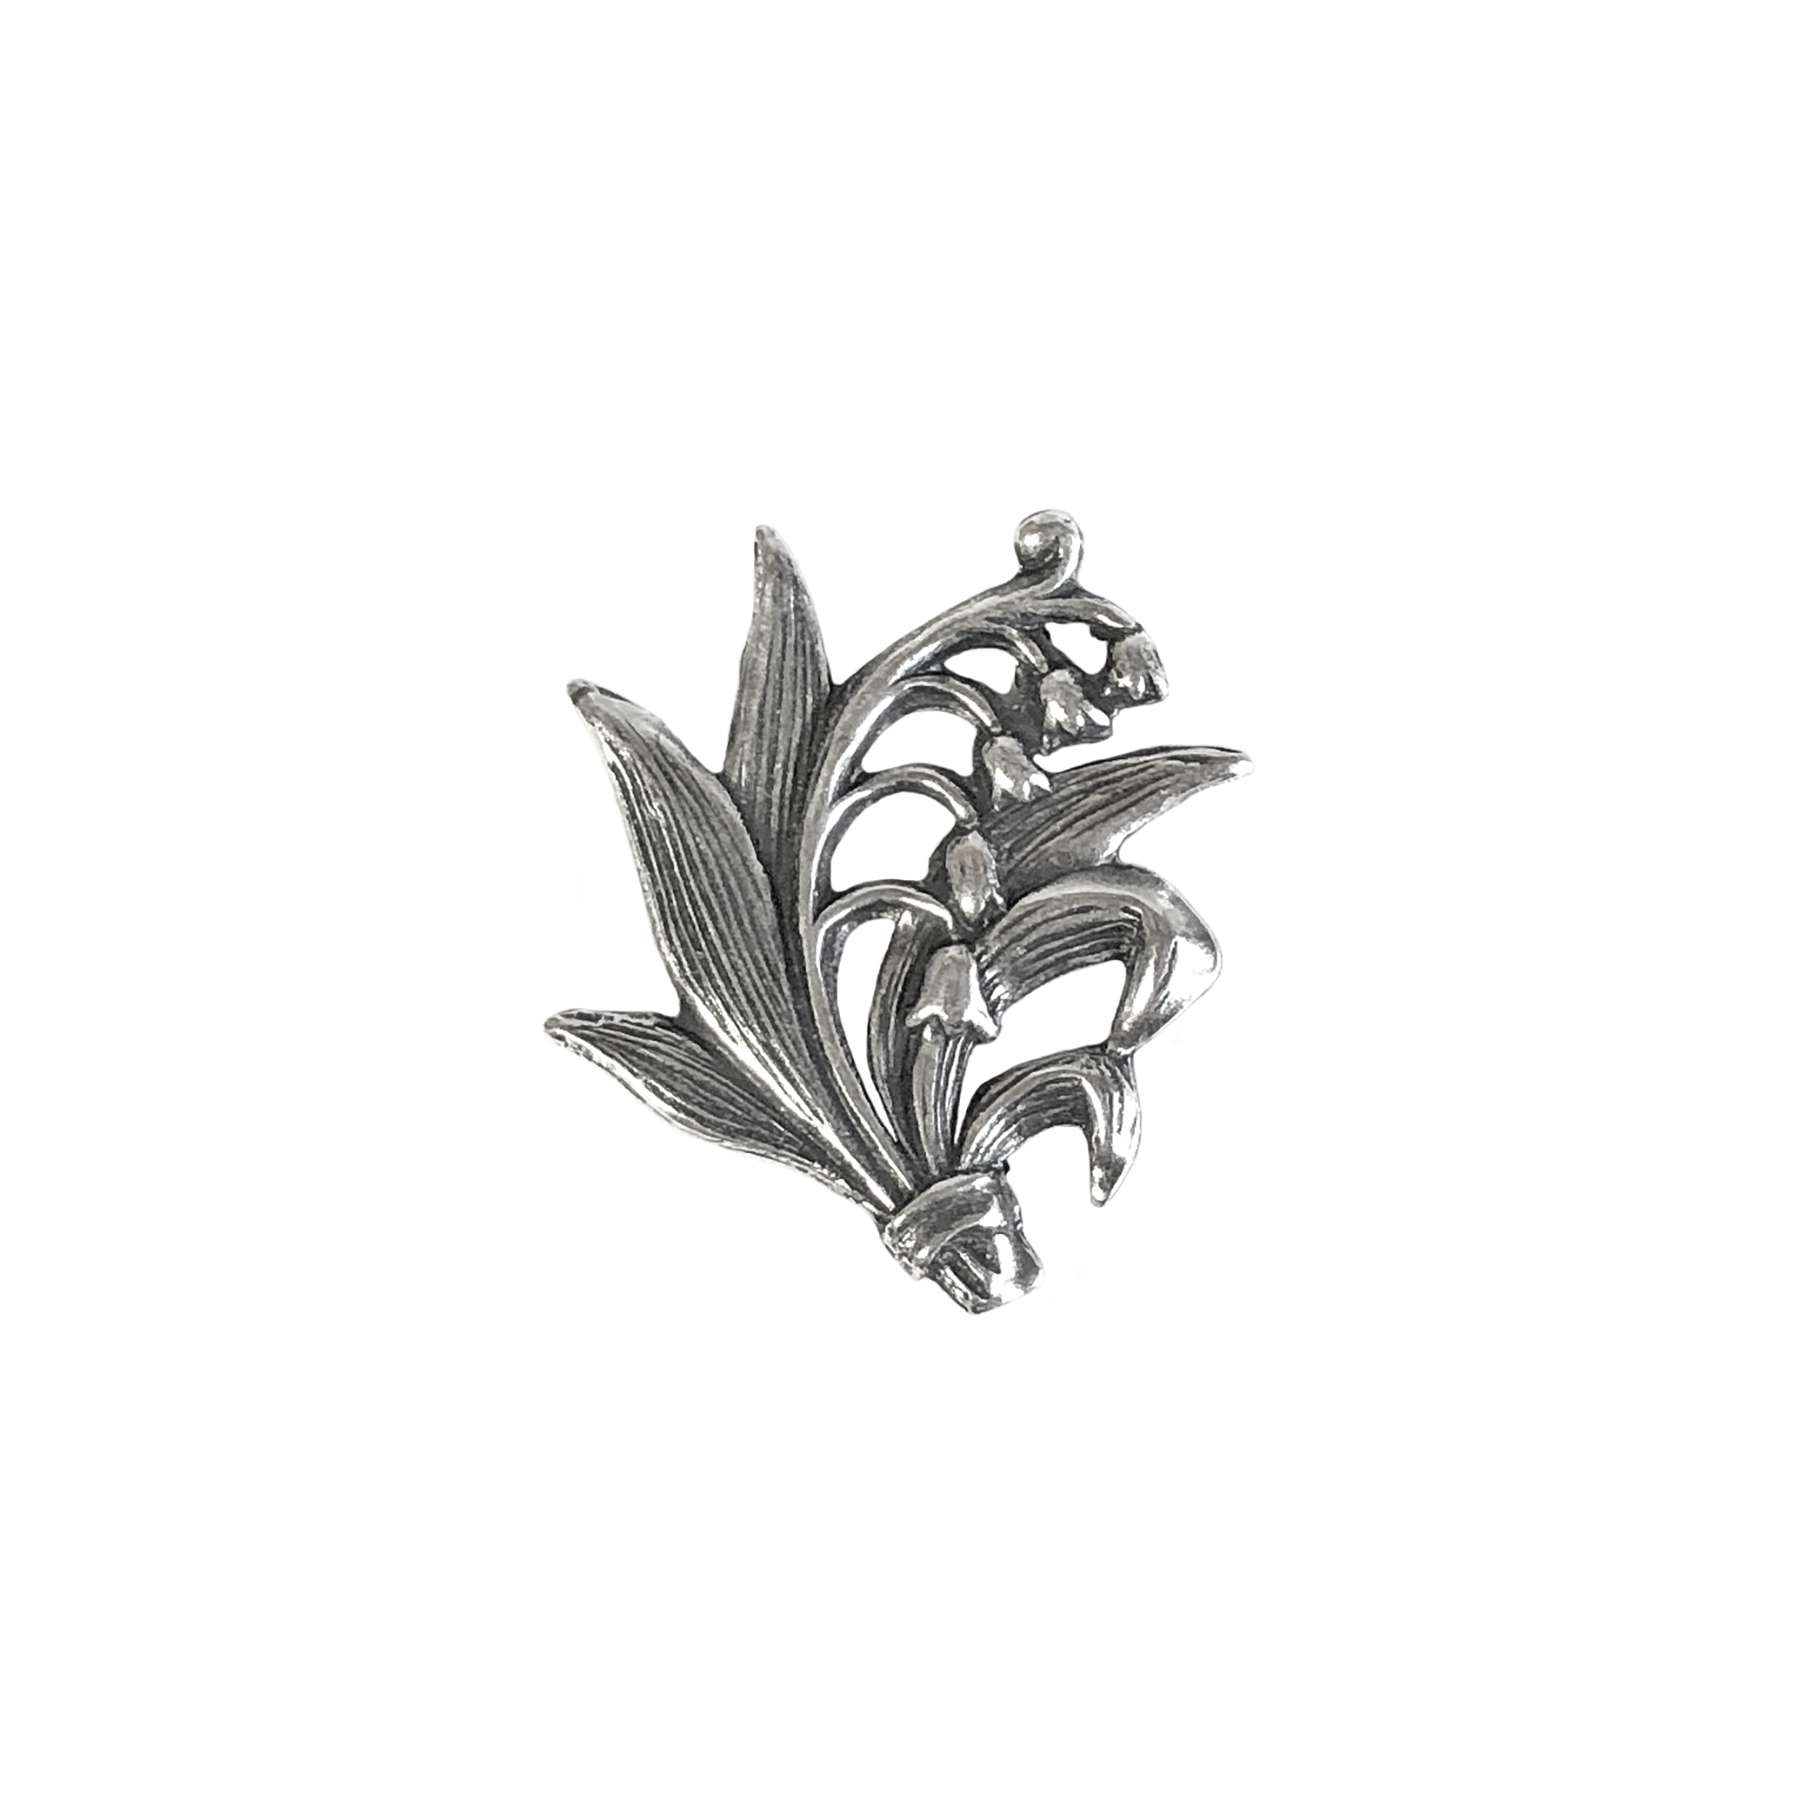 flower bouquet stamping, silverware silverplate. flowers, bouquet, antique silver, US made, nickel free, flower sprig, jewelry making, jewelry supplies, vintage supplies, silverware, silverplate, brass stamping, silver bouquet, B'sue Boutiques, 23x20mm,